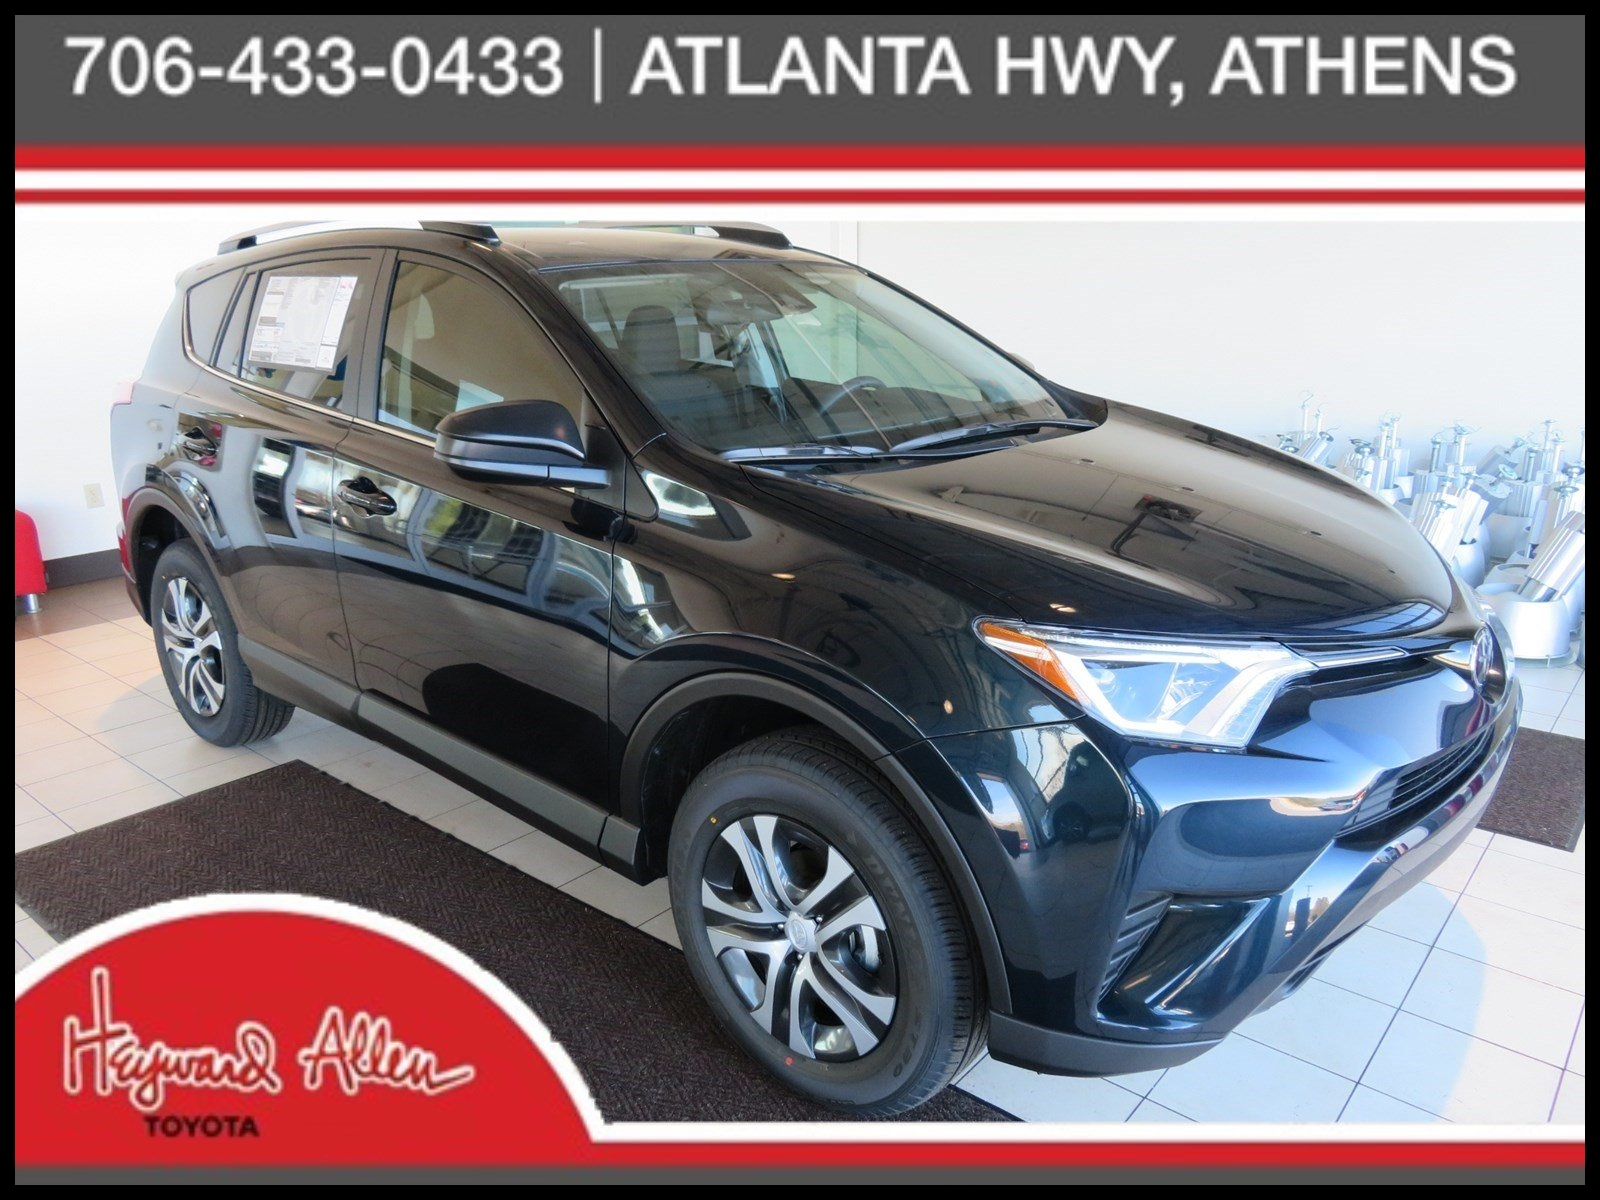 New New 2018 toyota Rav4 Le Sport Utility In athens Jj New Interior